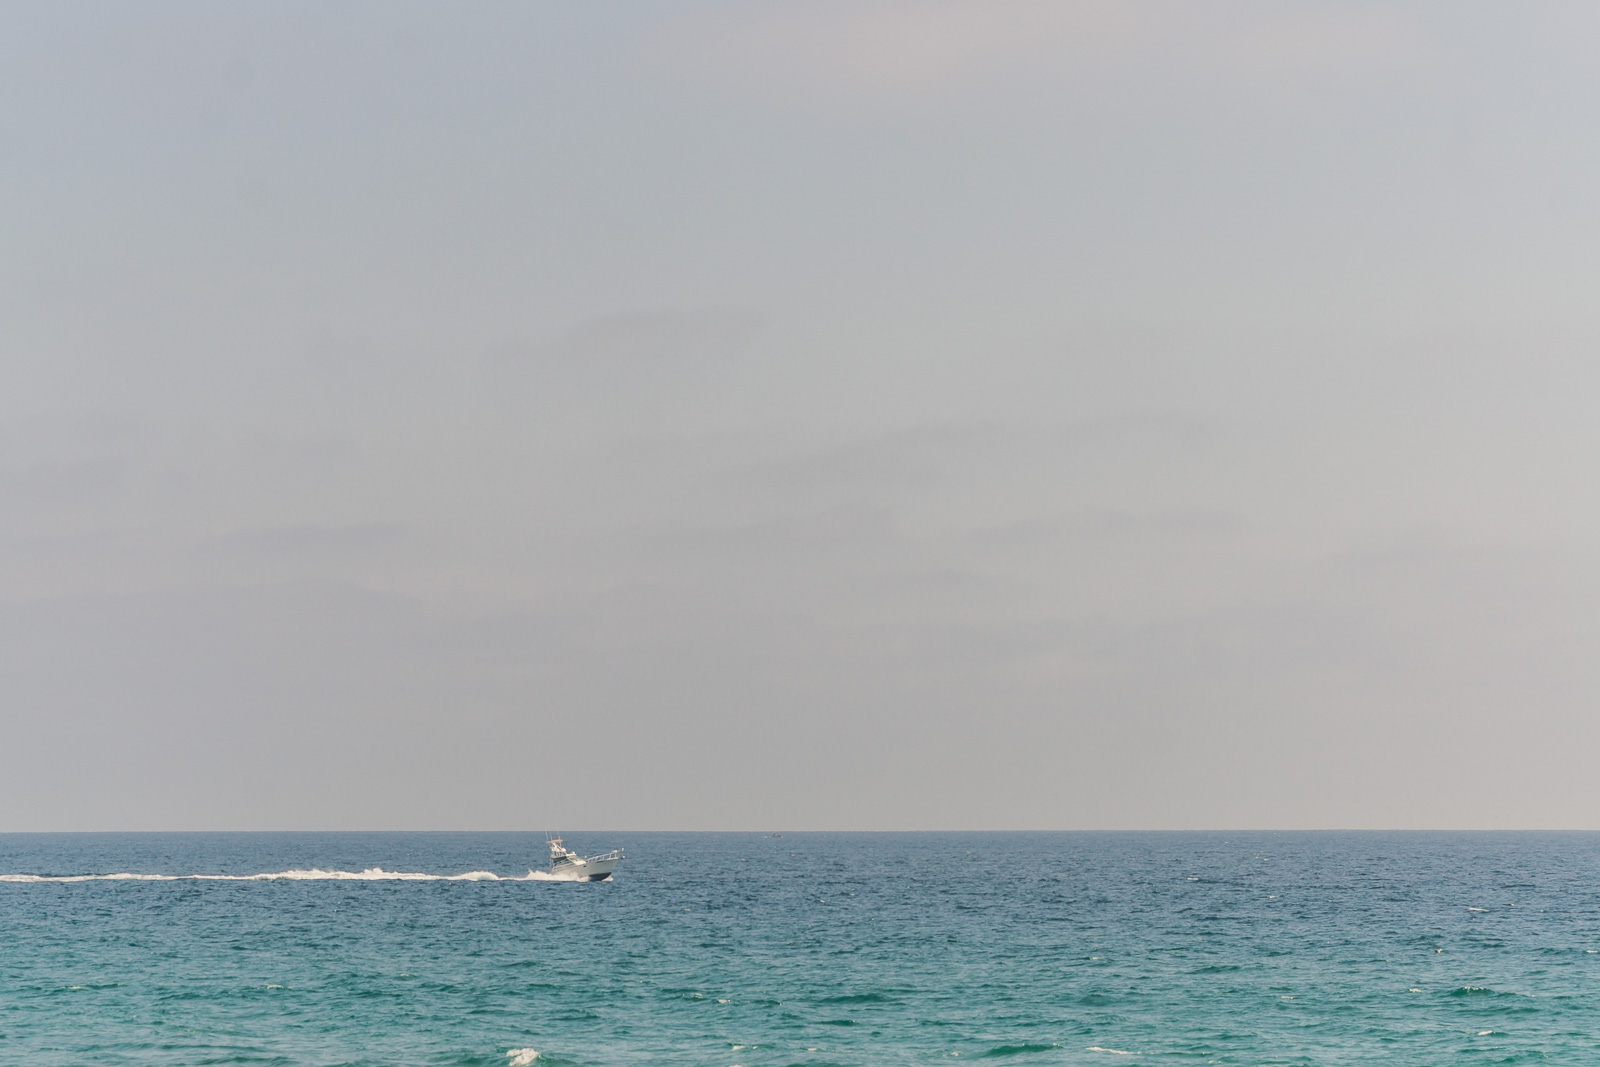 view from Newport Beach pier on a Sunny day overlooking ocean and speed boat